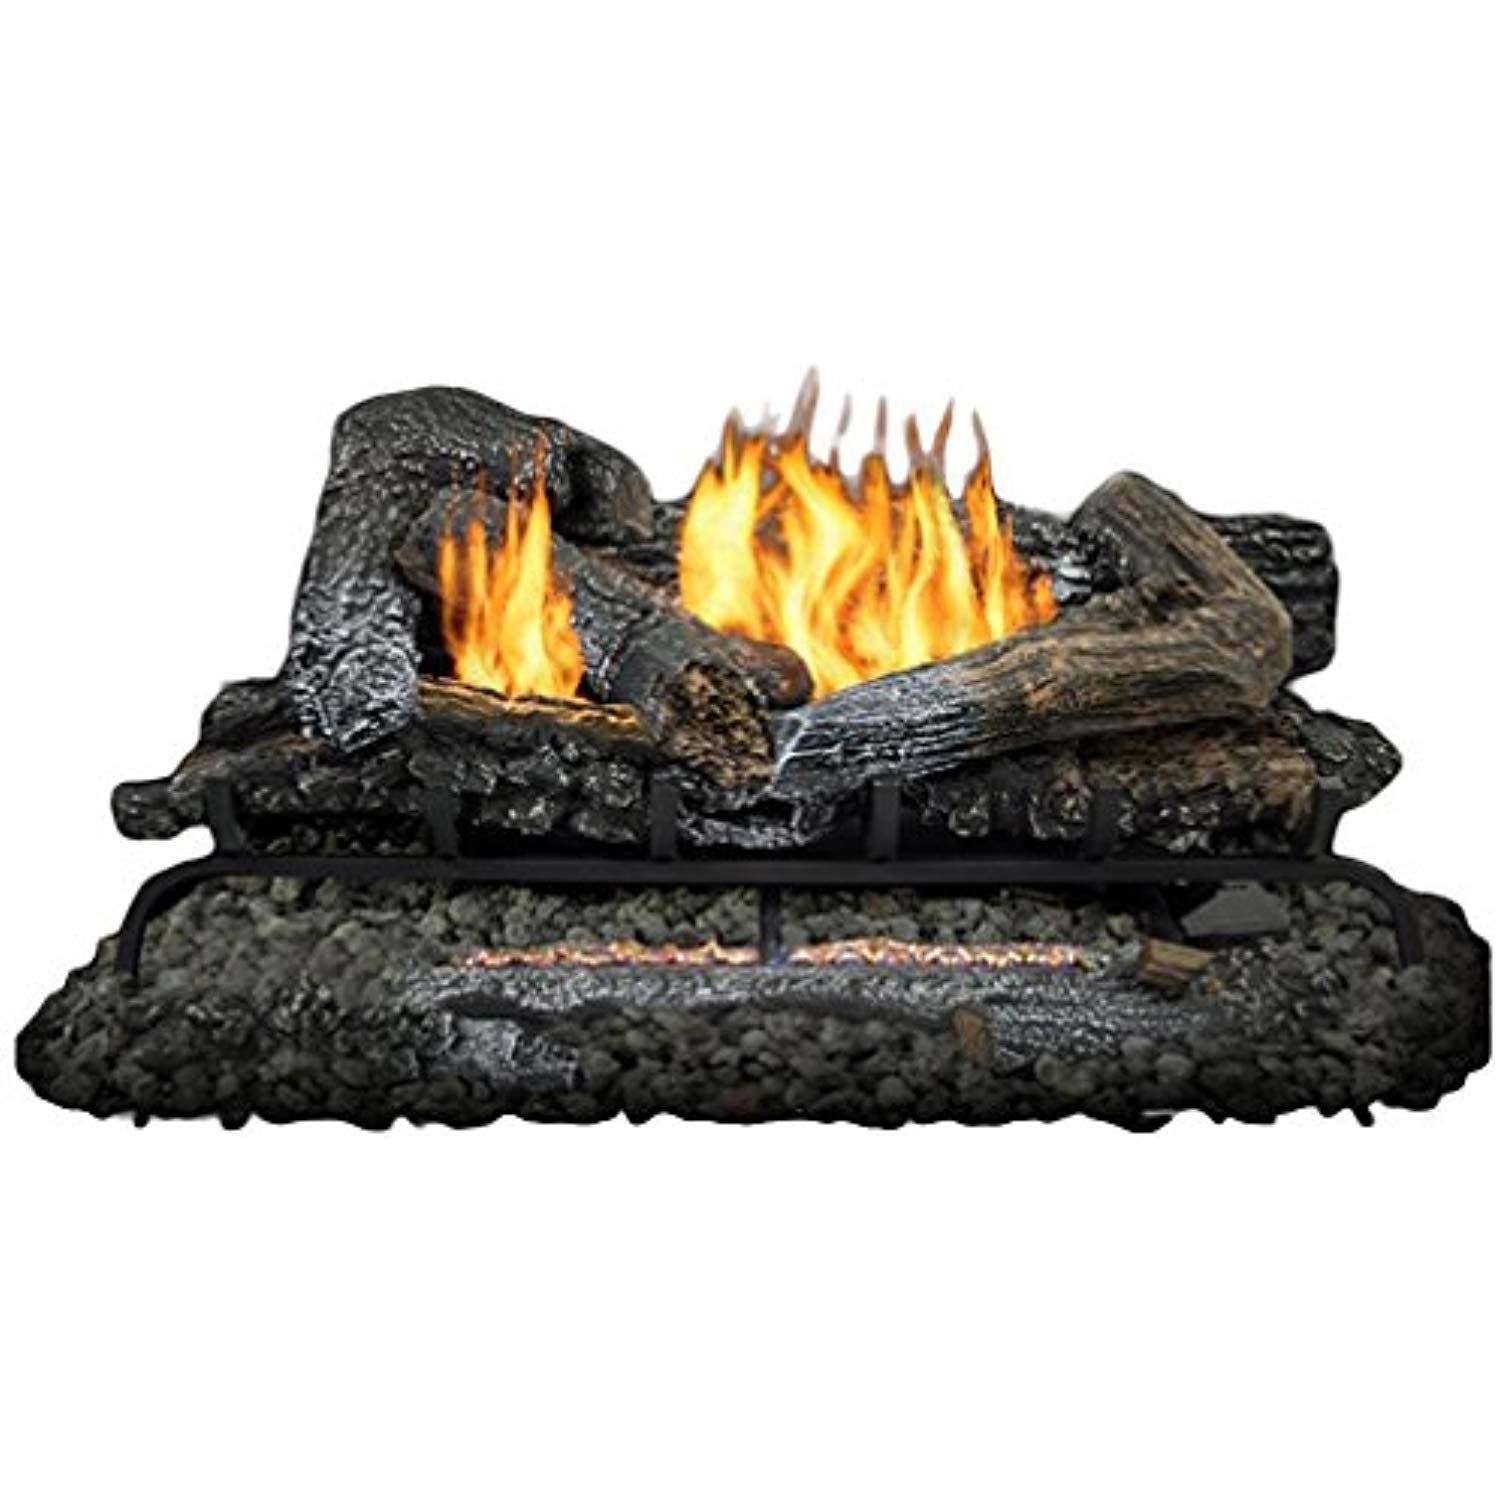 Magnificent Kozy World Gld3070R Vented Gas Log Set 30 Want To Know Interior Design Ideas Grebswwsoteloinfo